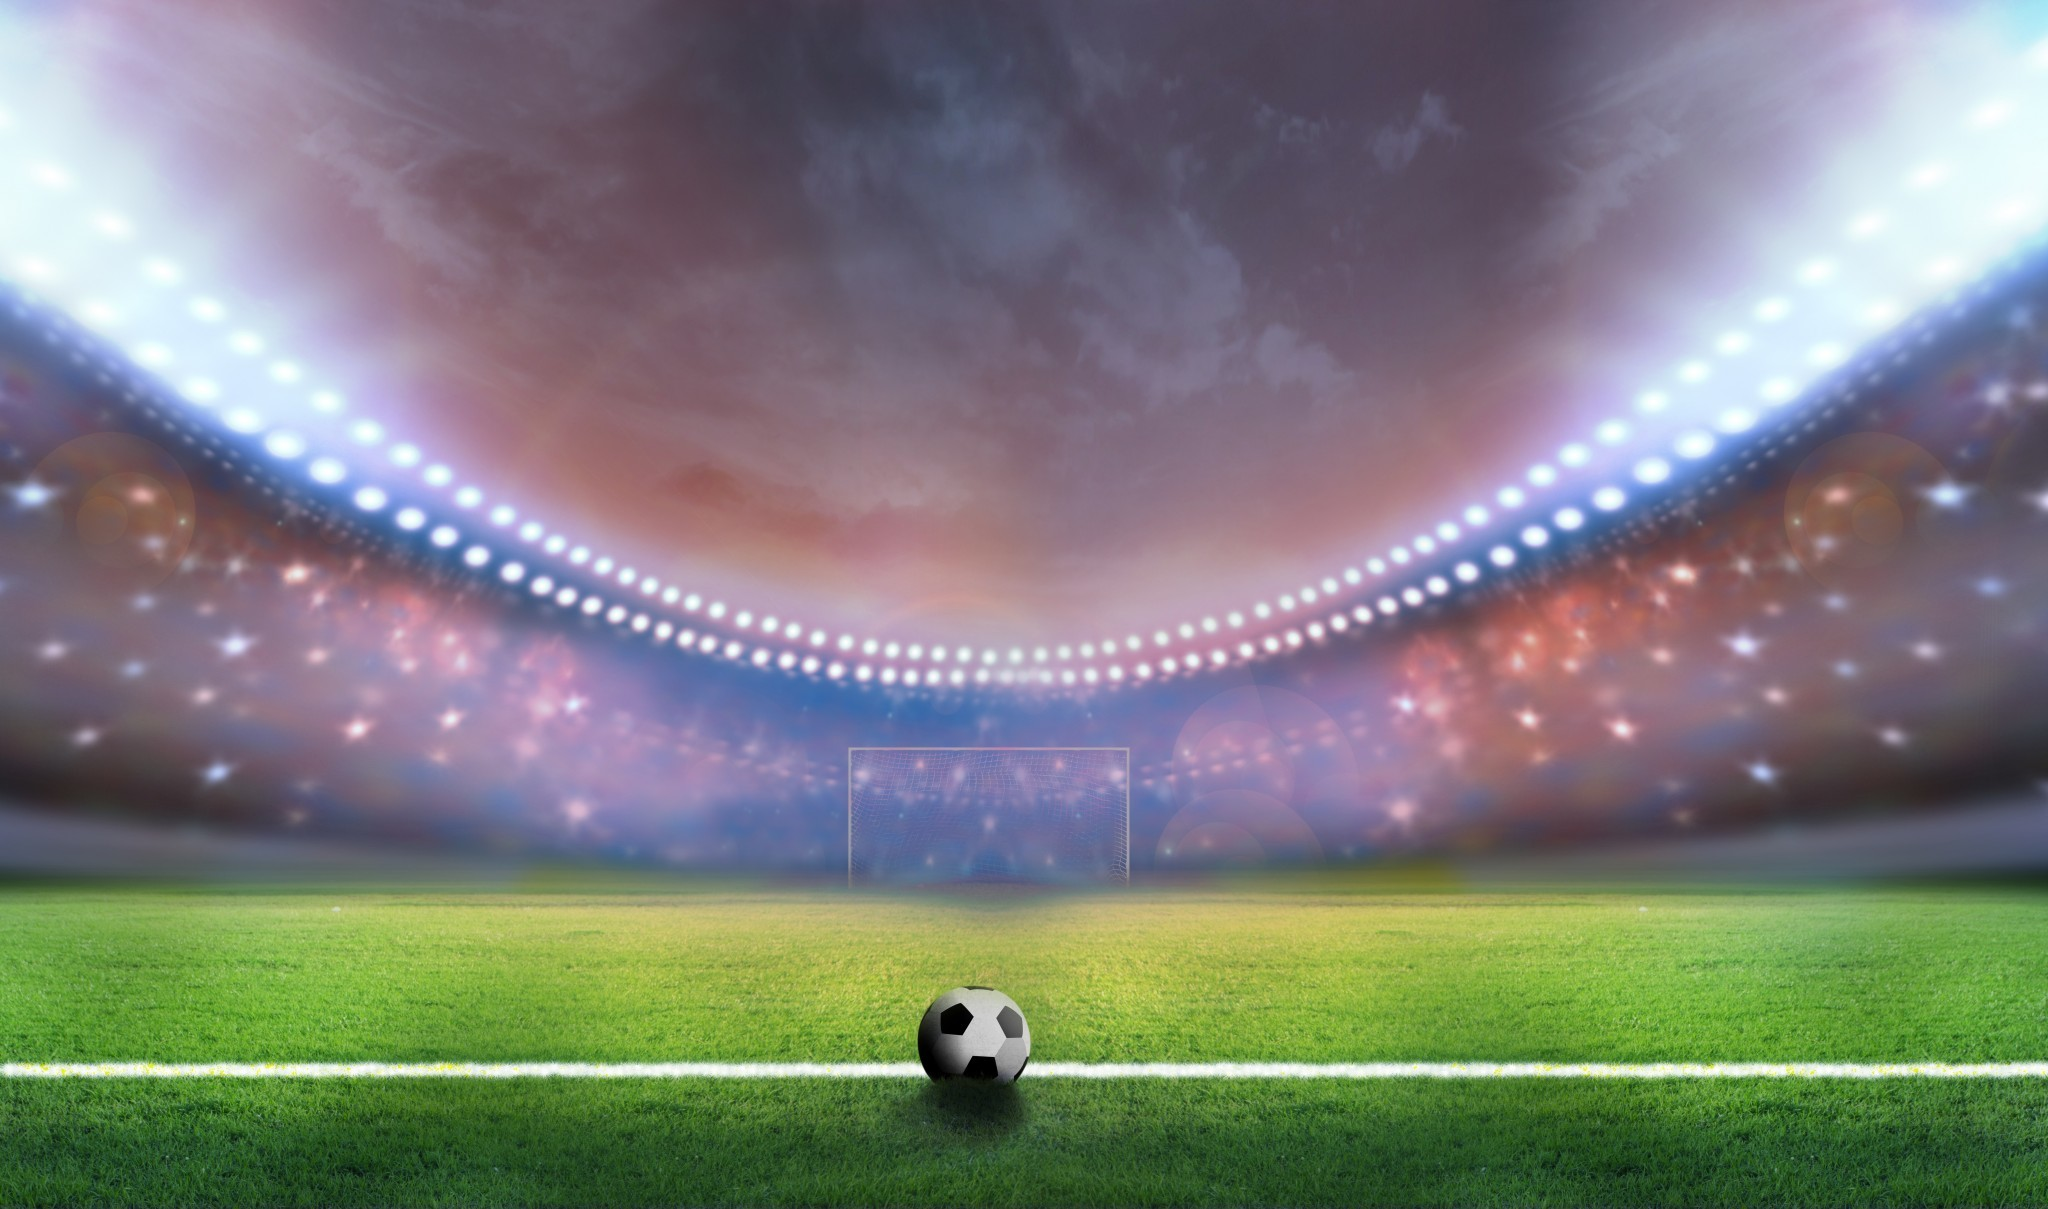 51 best Football images on Pinterest | Soccer images, Soccer ball and  Football